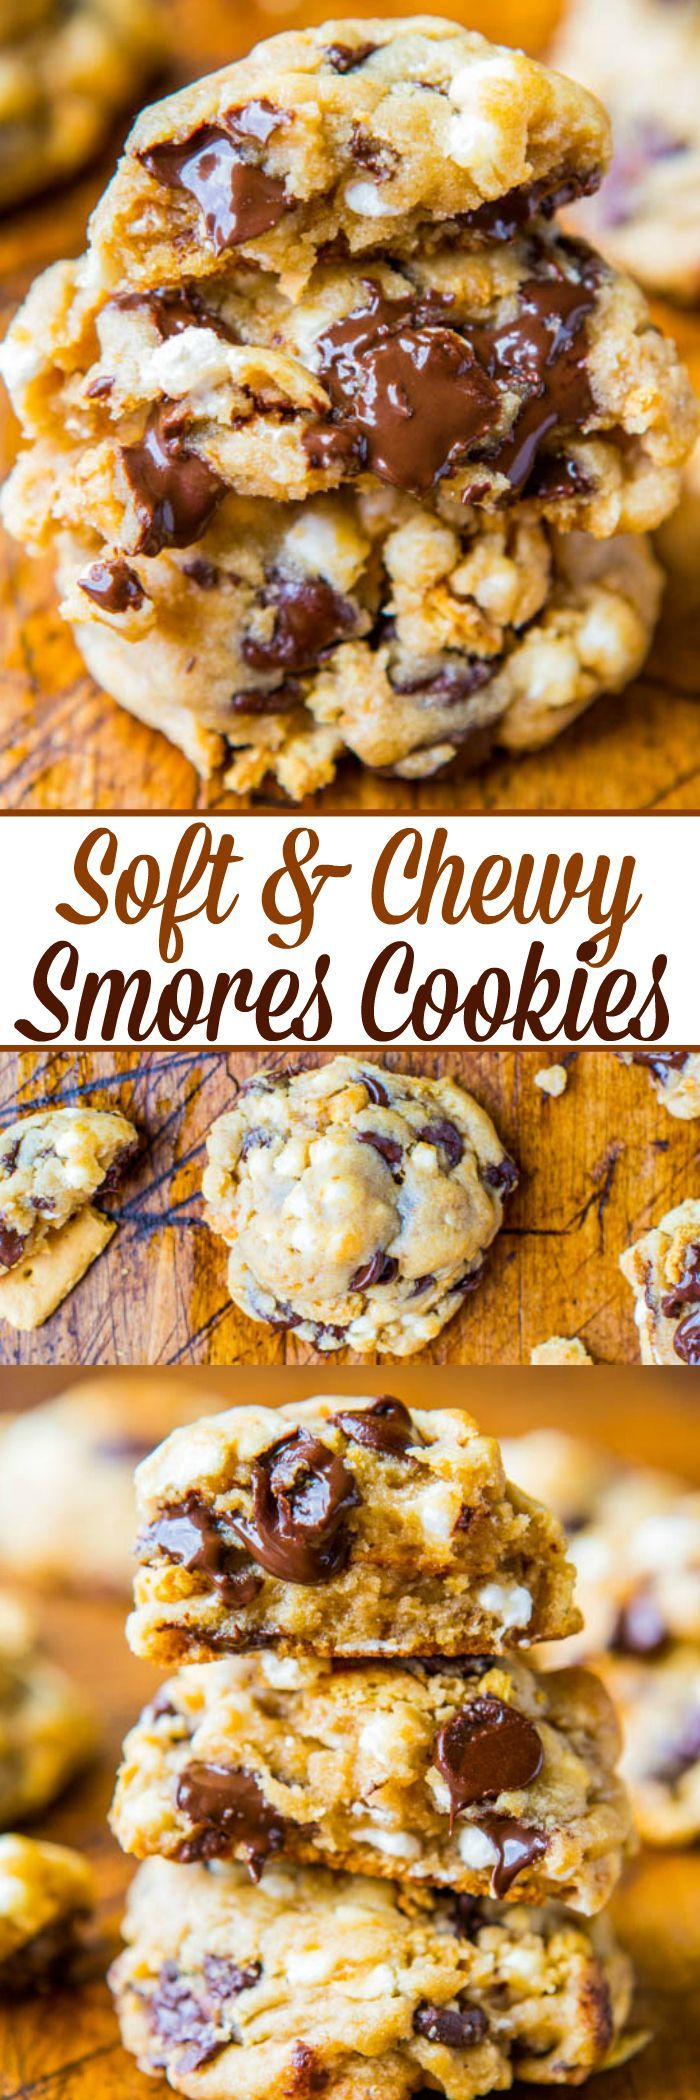 Soft and Chewy Smores Cookies - Loaded with chocolate, marshmallows, and graham crackers!! The best smores you'll ever eat and no campfire required!!